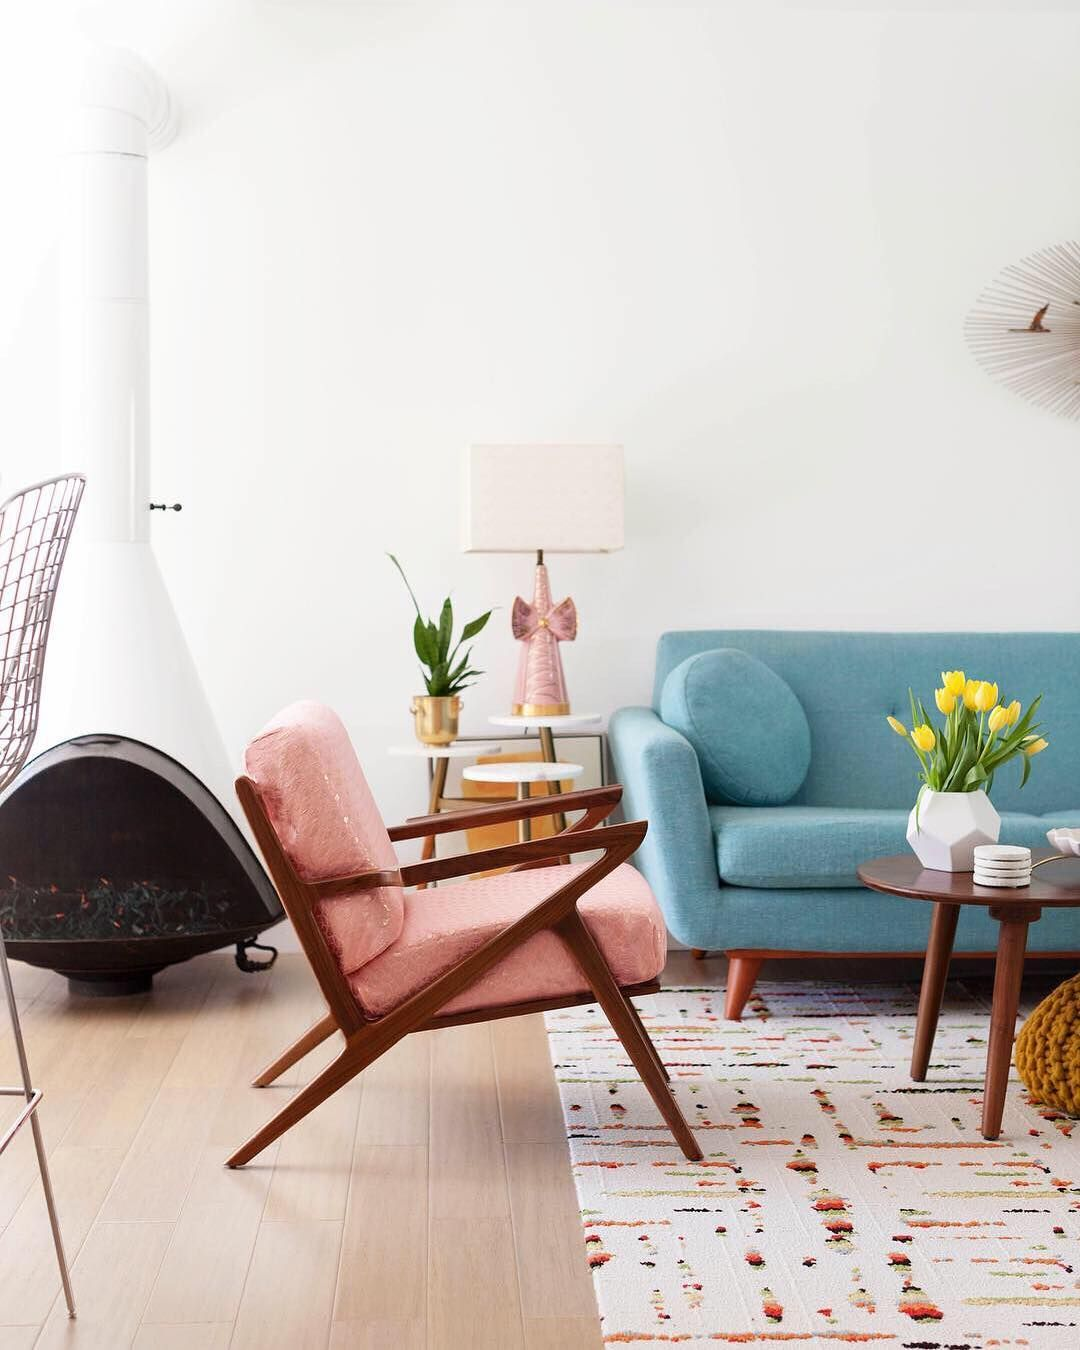 Pops of color in mid-century modern decor via @melodrama